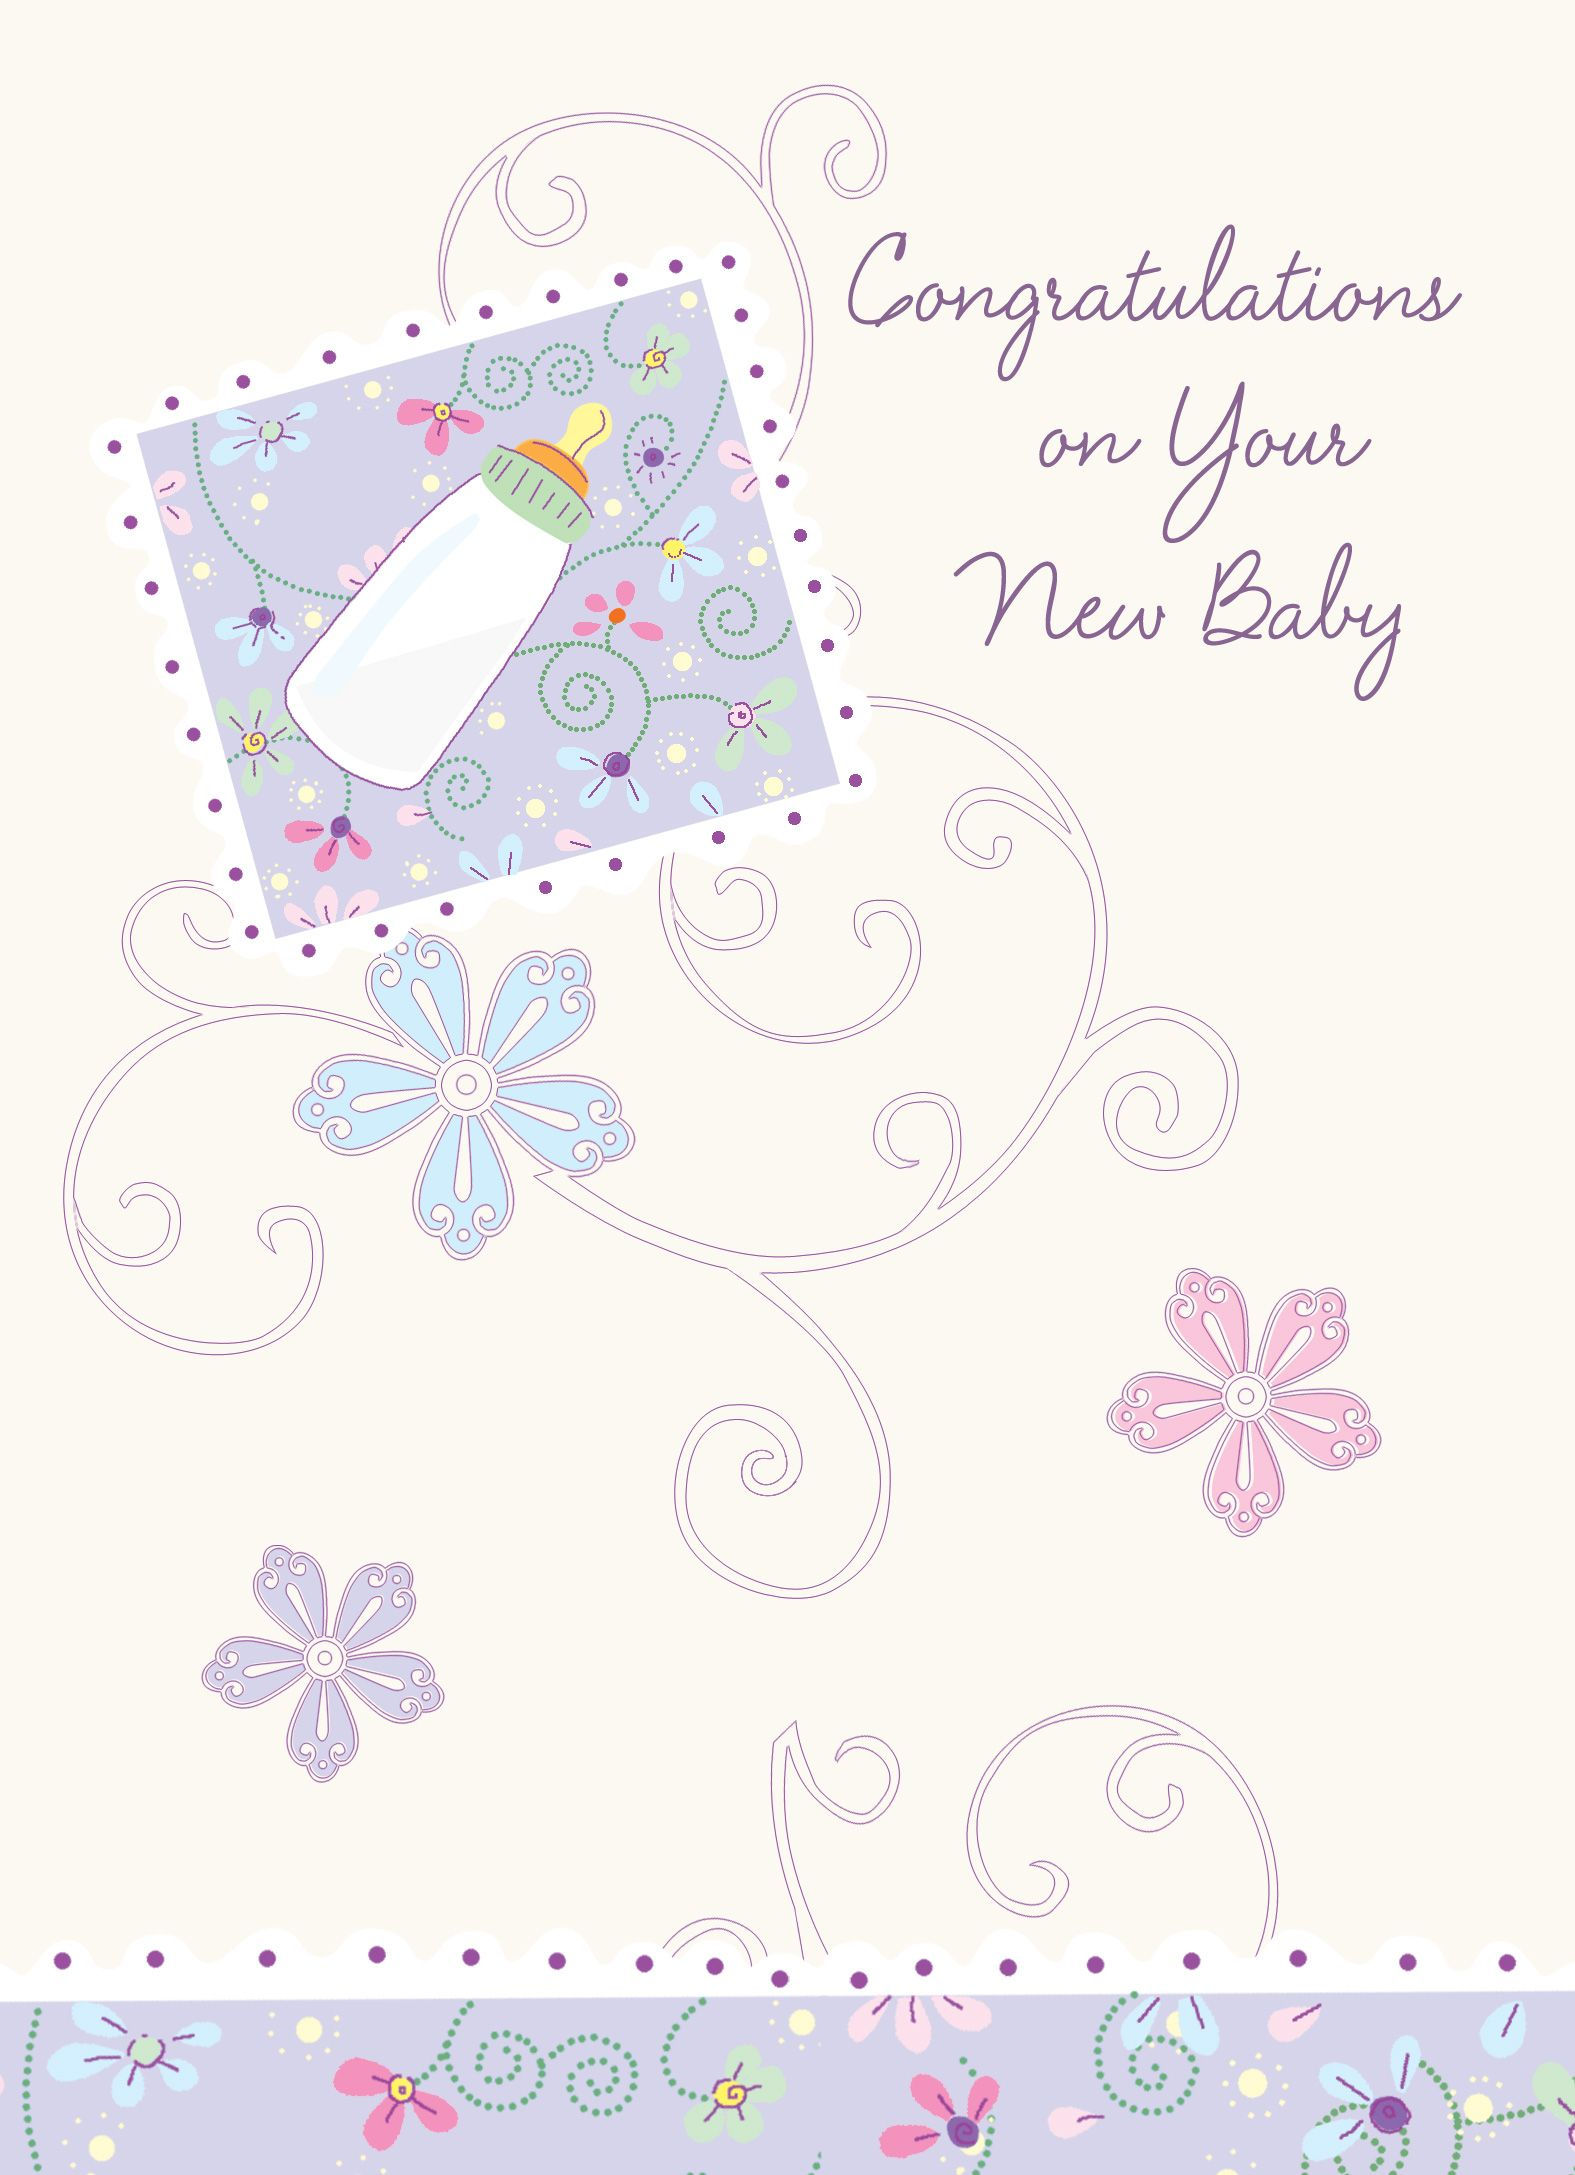 New baby wishes baby greetings gifts pinterest new baby wishes kristyandbryce Gallery